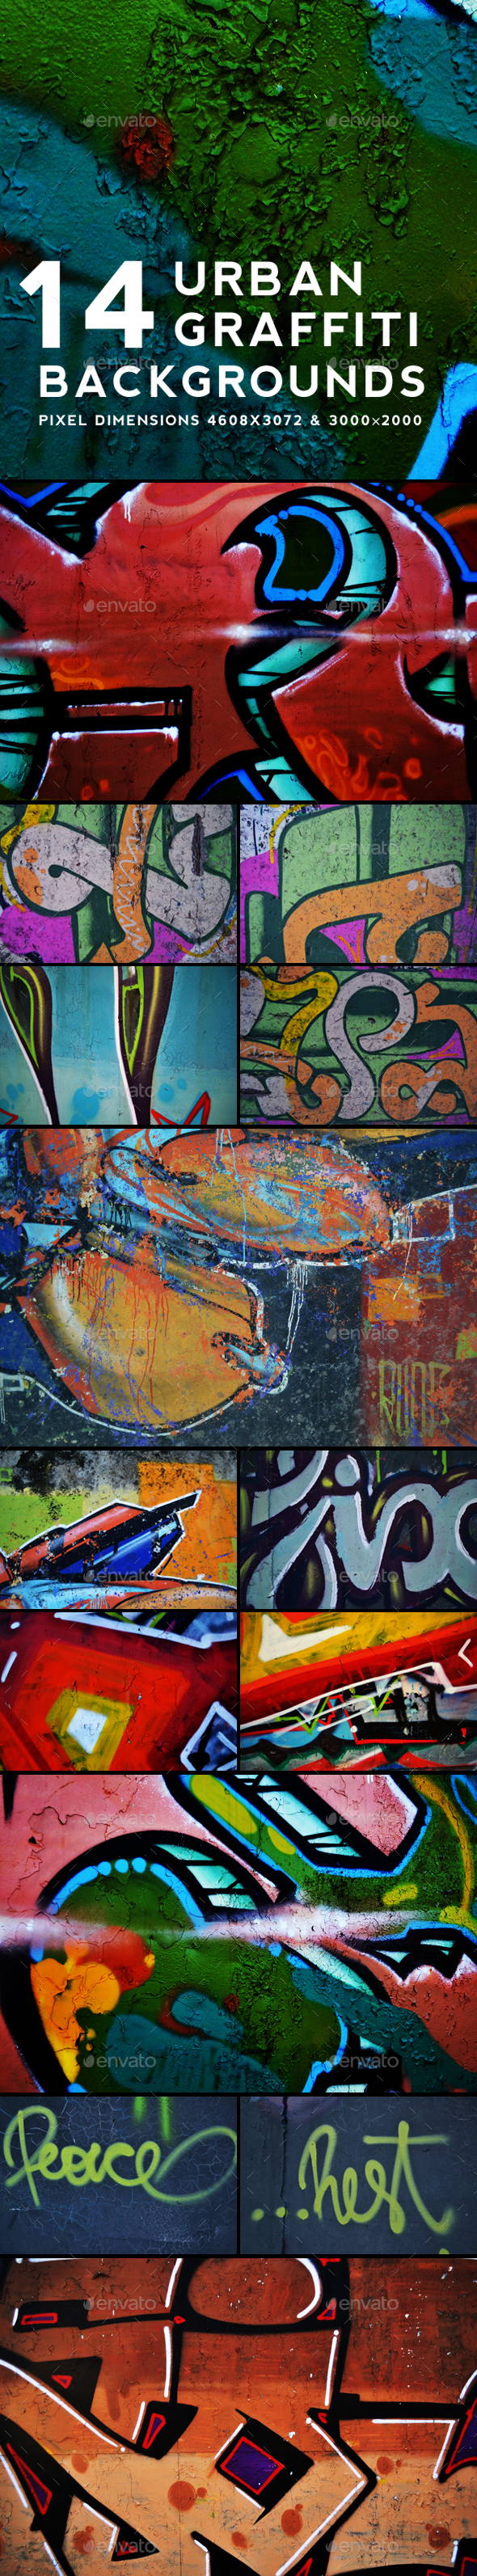 Urban Graffiti Backgrounds v7 - Urban Backgrounds